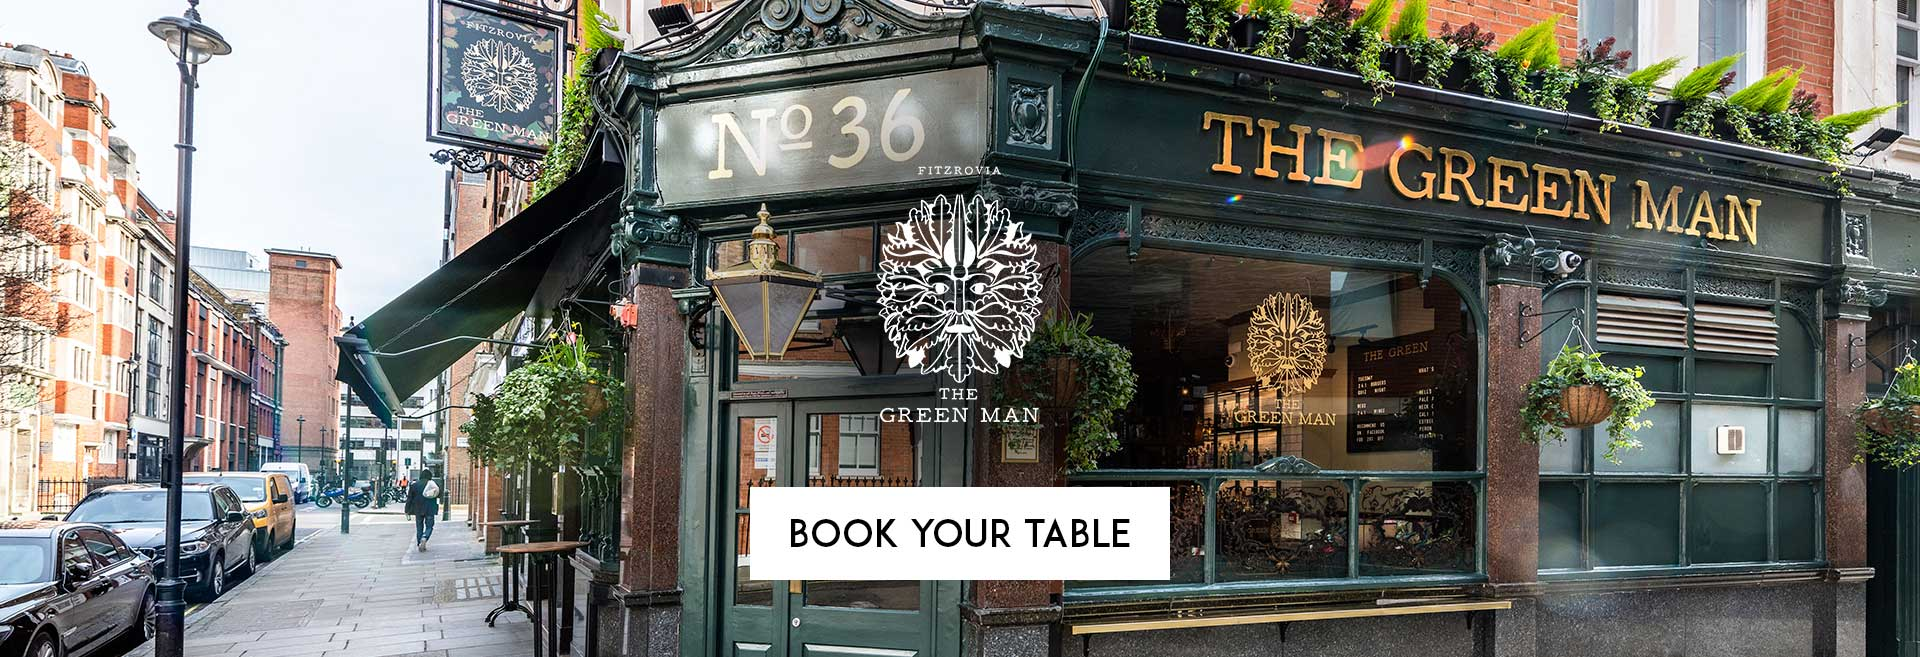 Book Your Table The Green Man